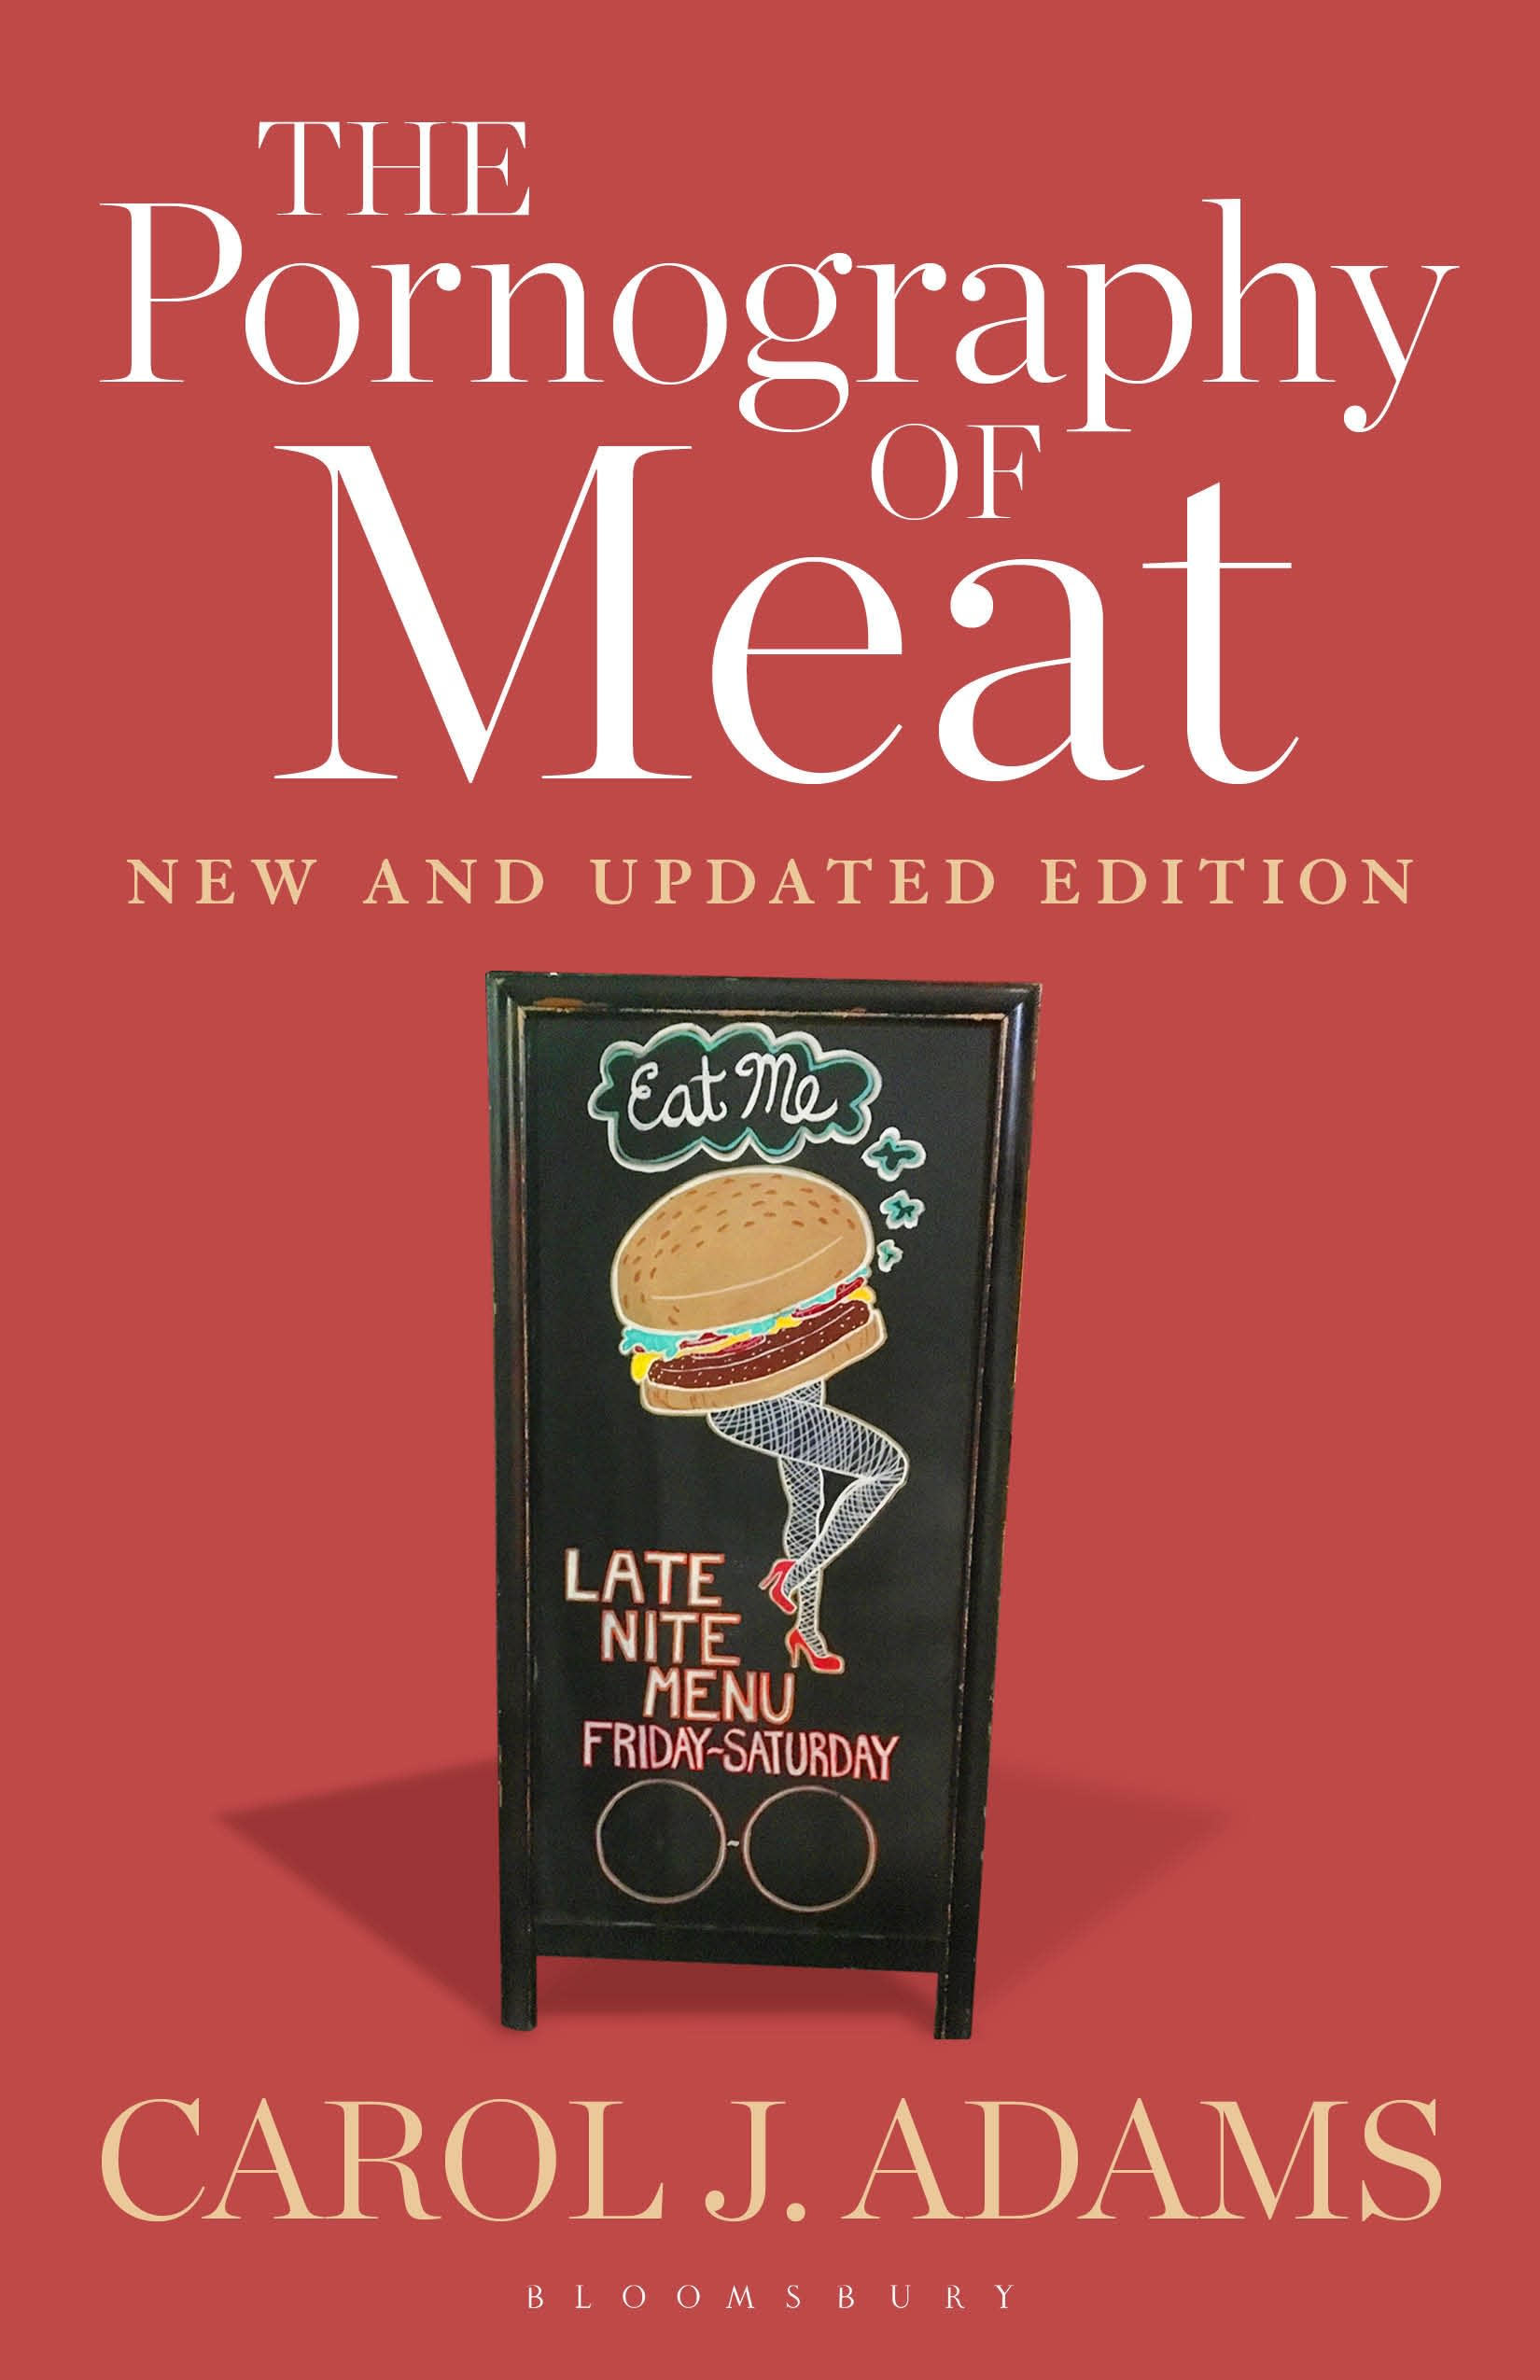 The Pornography of Meat by Carole J. Adams